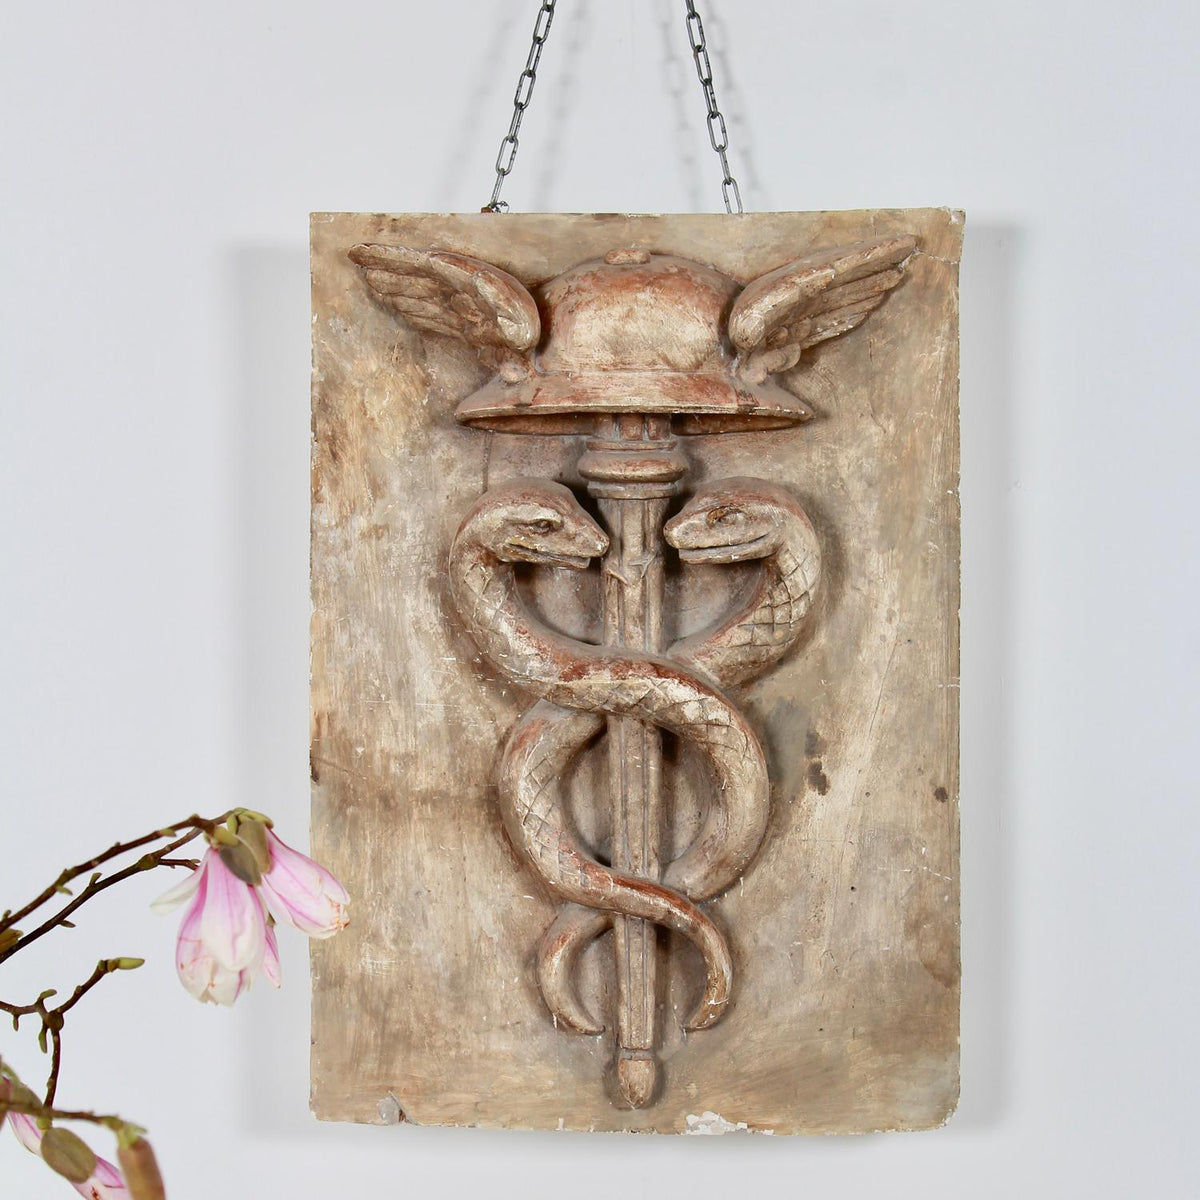 Decorative French Caduceus Plaster Plaque Hermes and Snakes